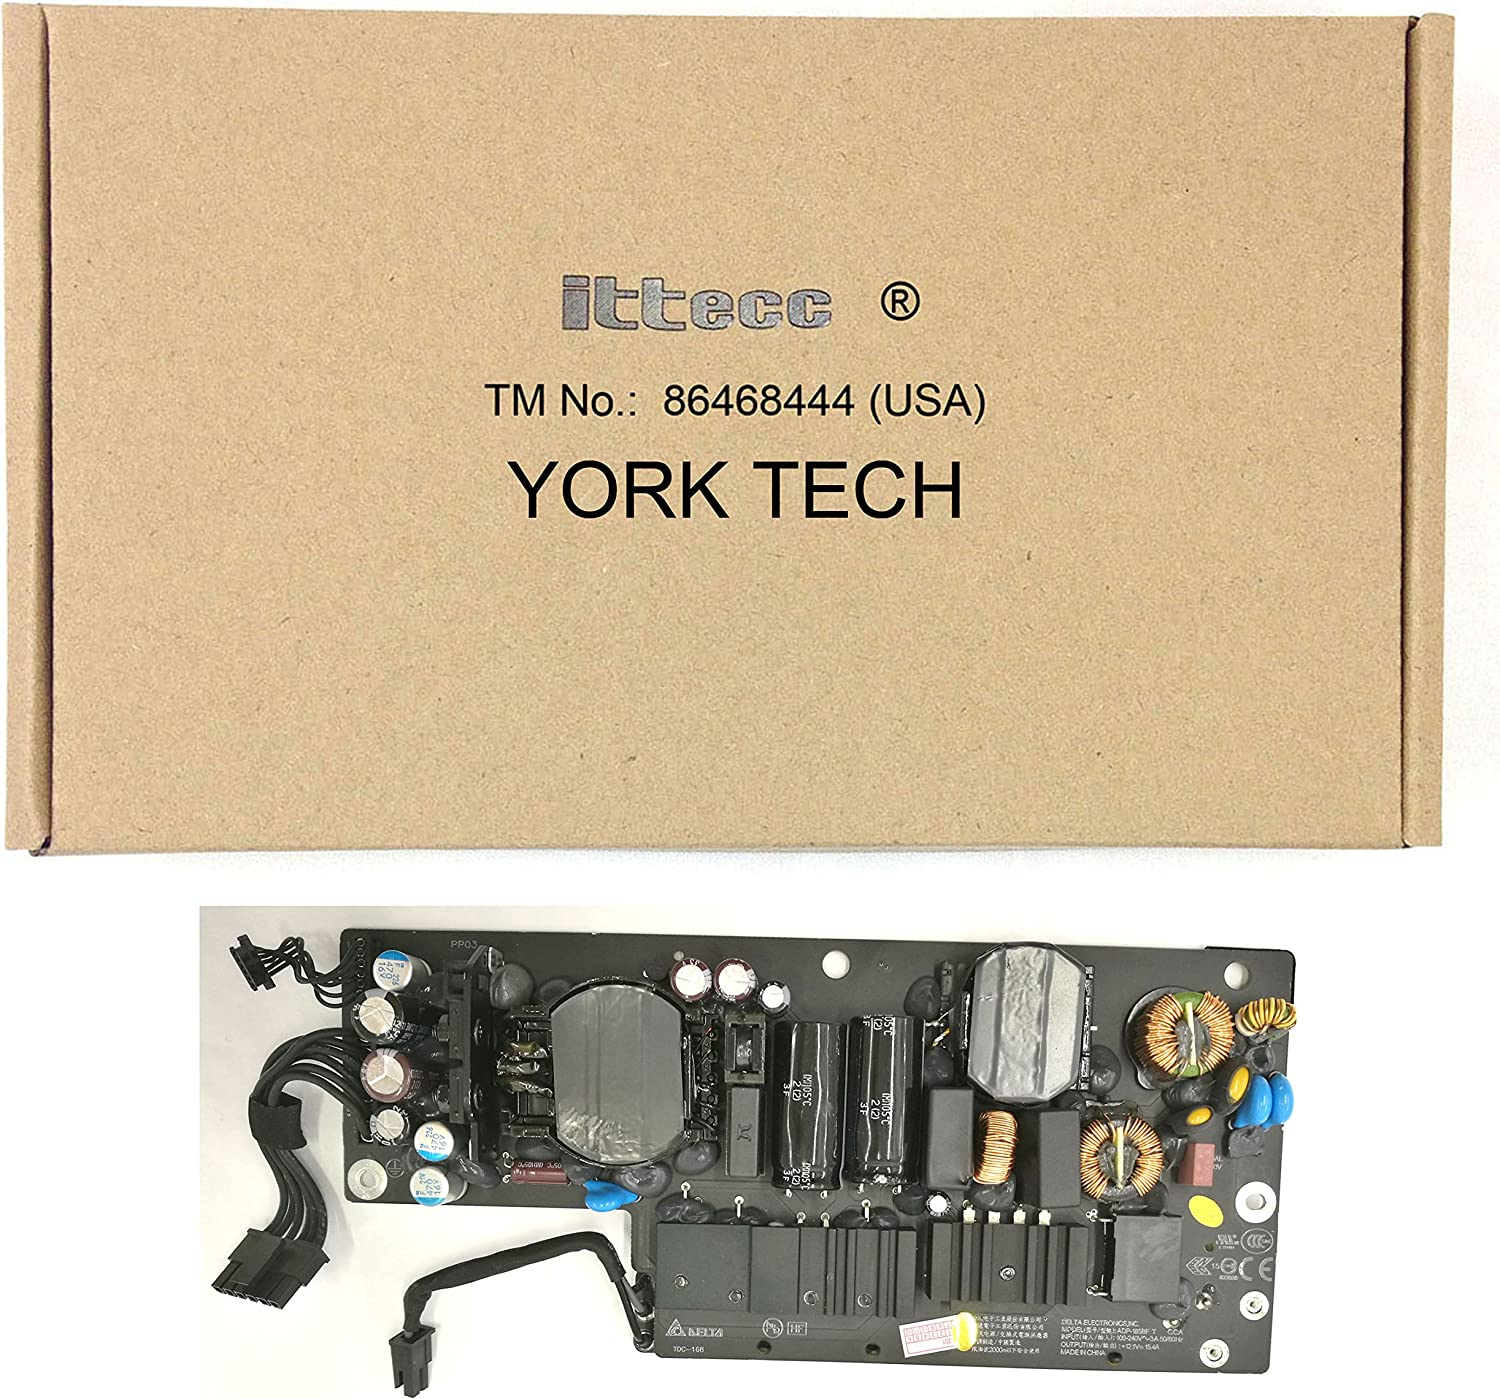 Ittecc Replacement 661-7111 Power Supply Fit for Apple 185W,614-0499 ADP-185BF A1418 2012 Year